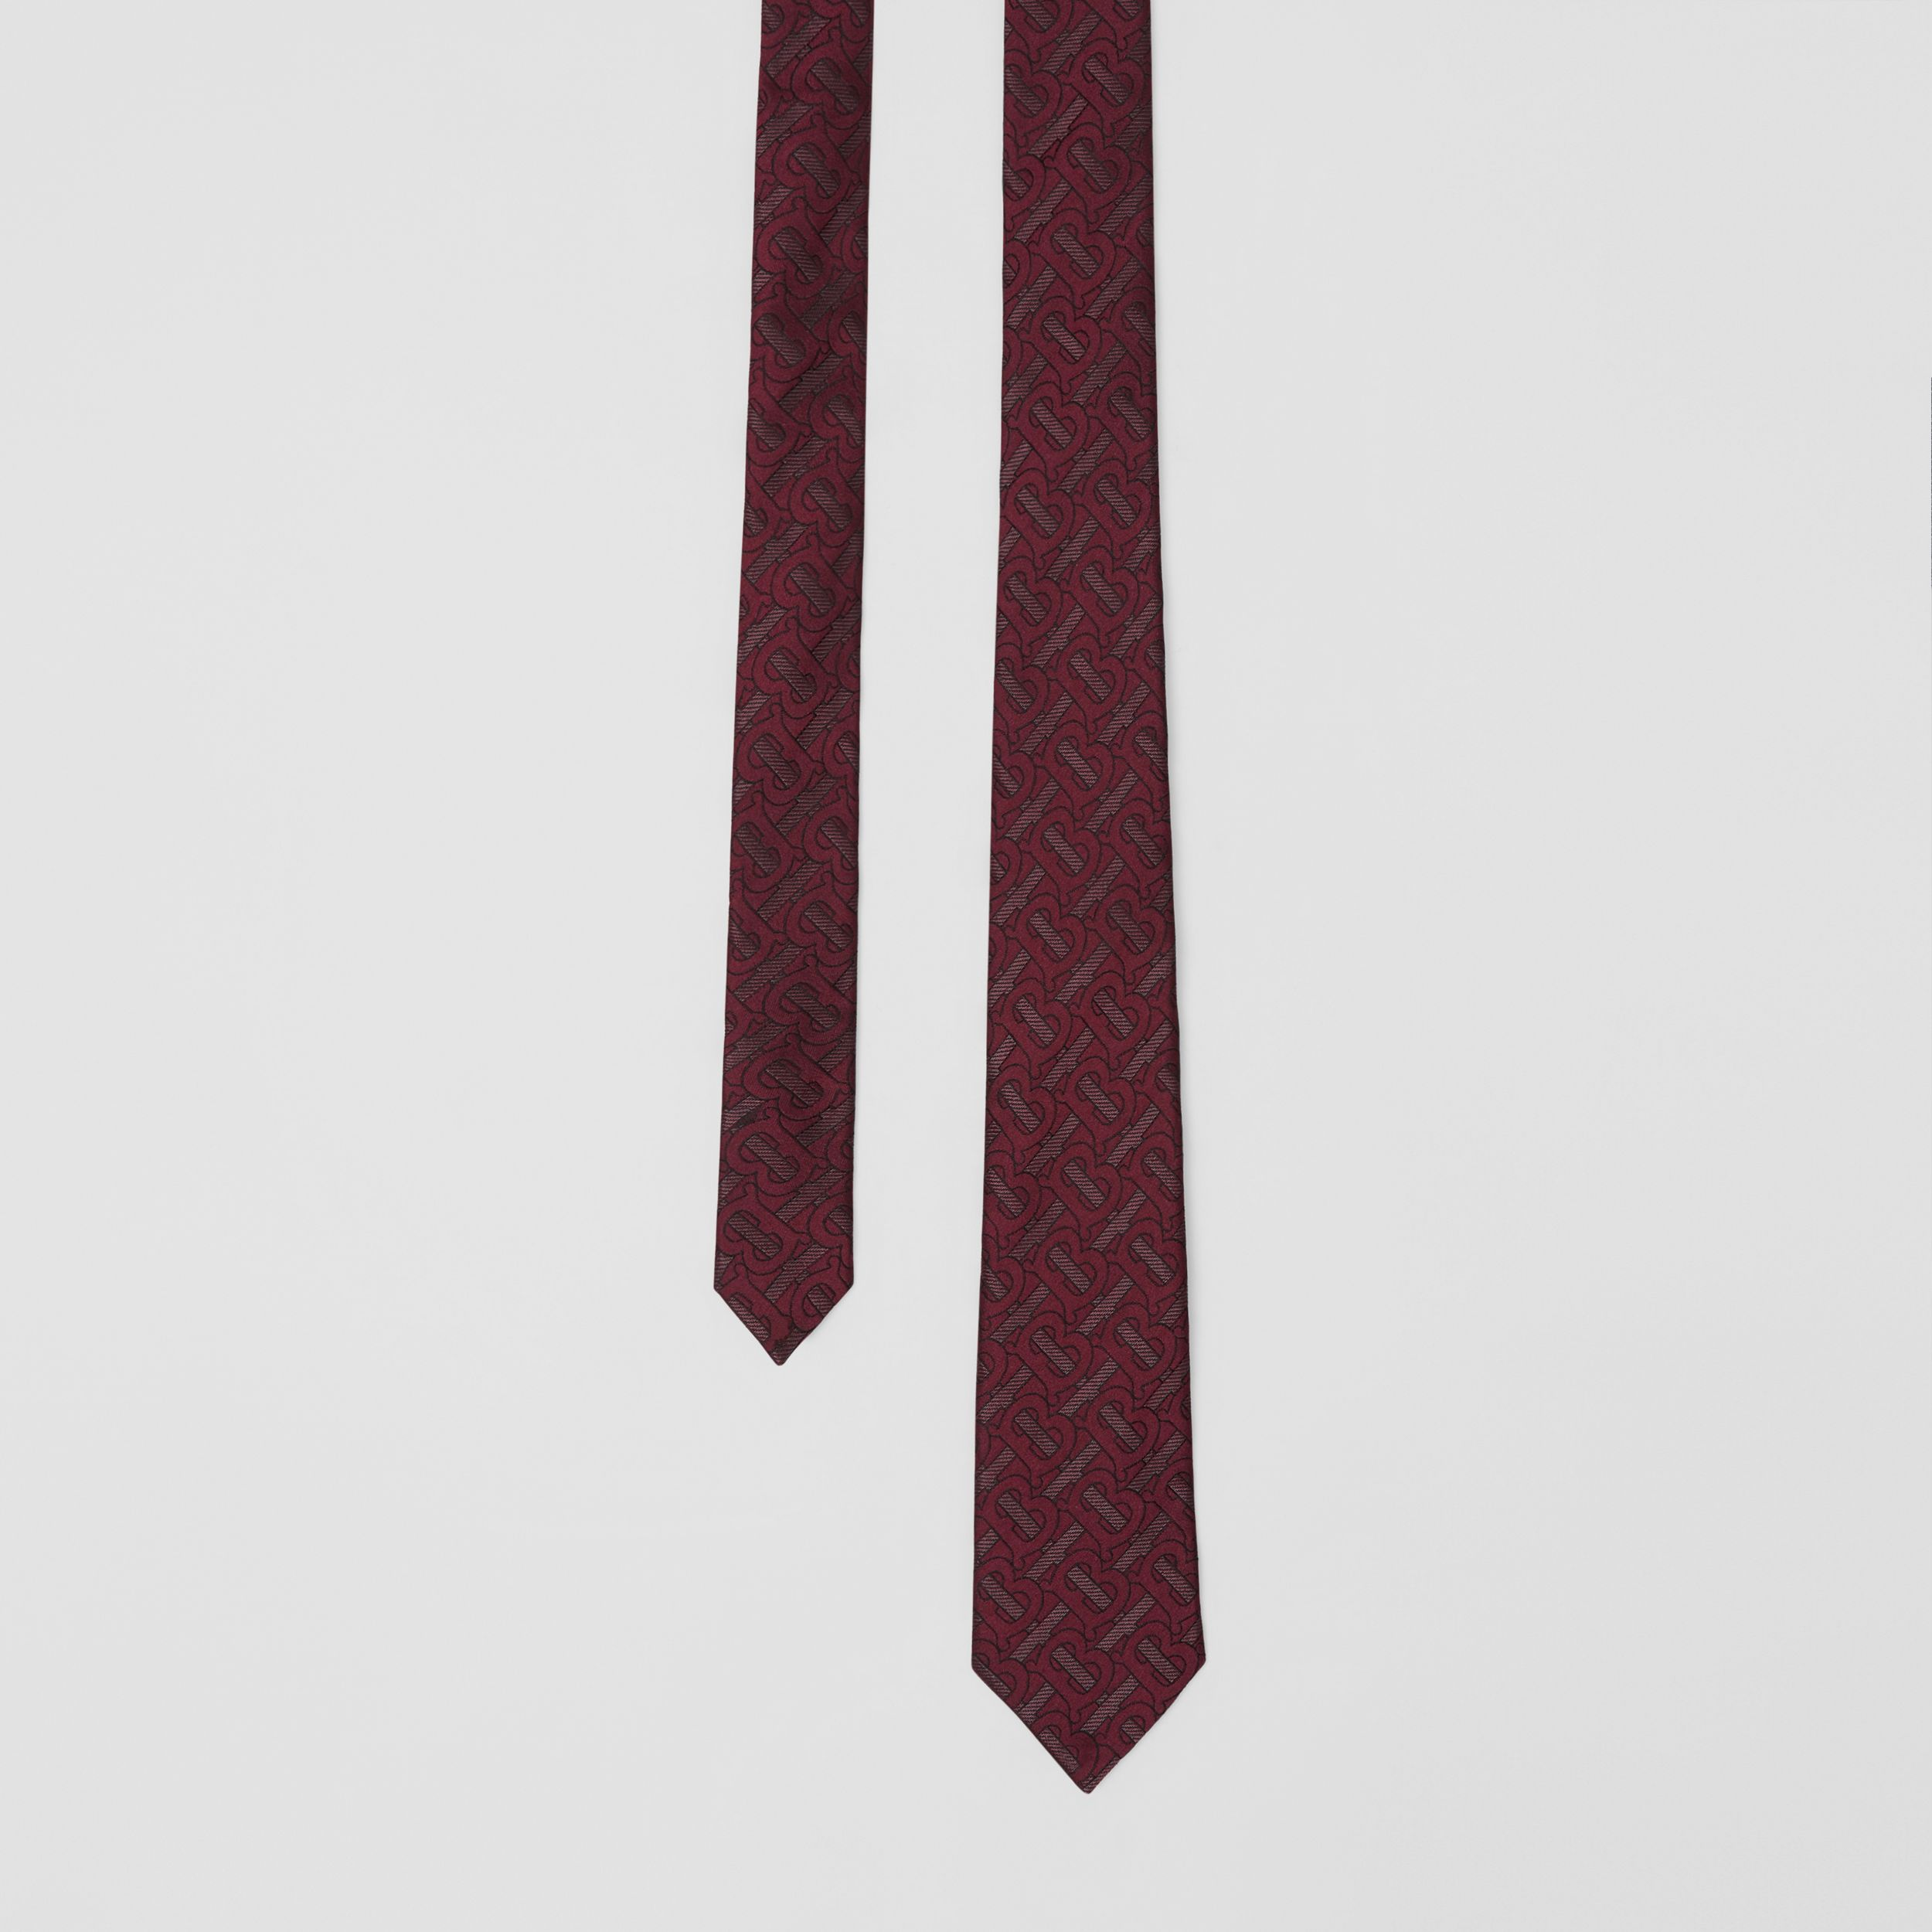 Classic Cut Monogram Silk Blend Jacquard Tie in Burgundy - Men | Burberry Australia - 1